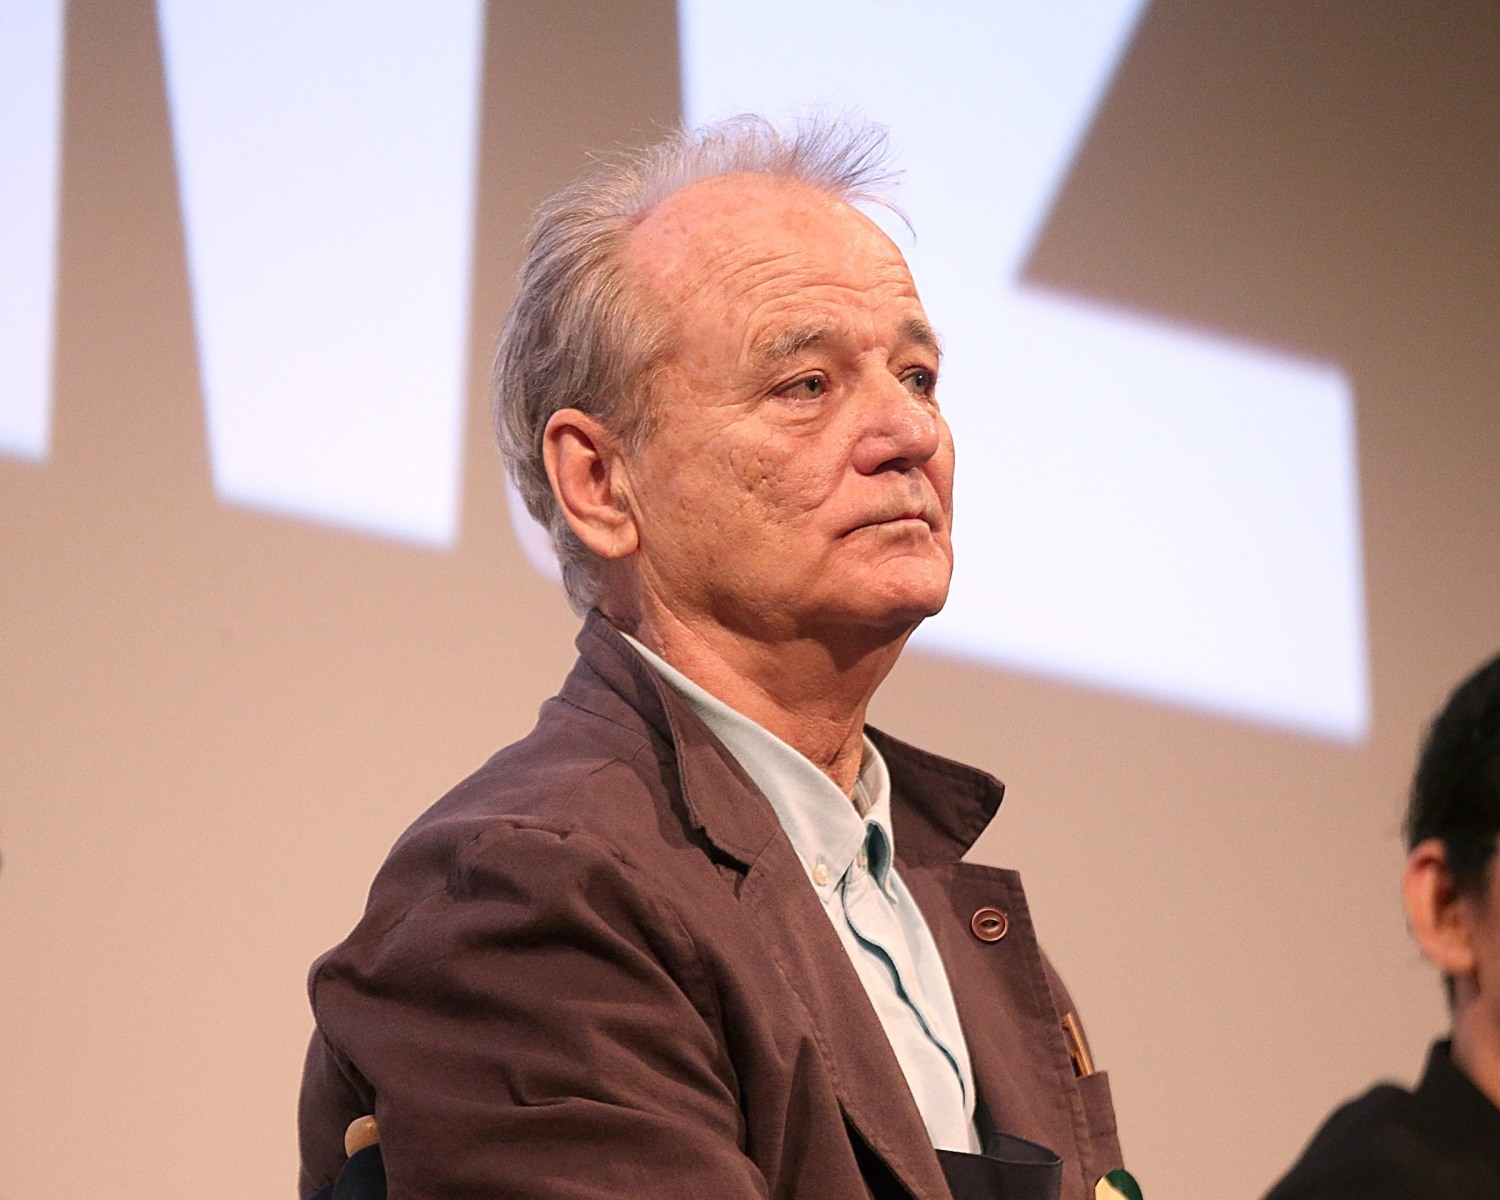 """Bill Murray attends the premiere of """"Isle of Dogs"""" at the Paramount Theatre during South By Southwest on March 17, 2018 in Austin, Texas. Murray recently defended Dustin Hoffman in the wake of several sexual assault and harassment allegations made against Hoffman. (Photo by Gary Miller/FilmMagic)"""